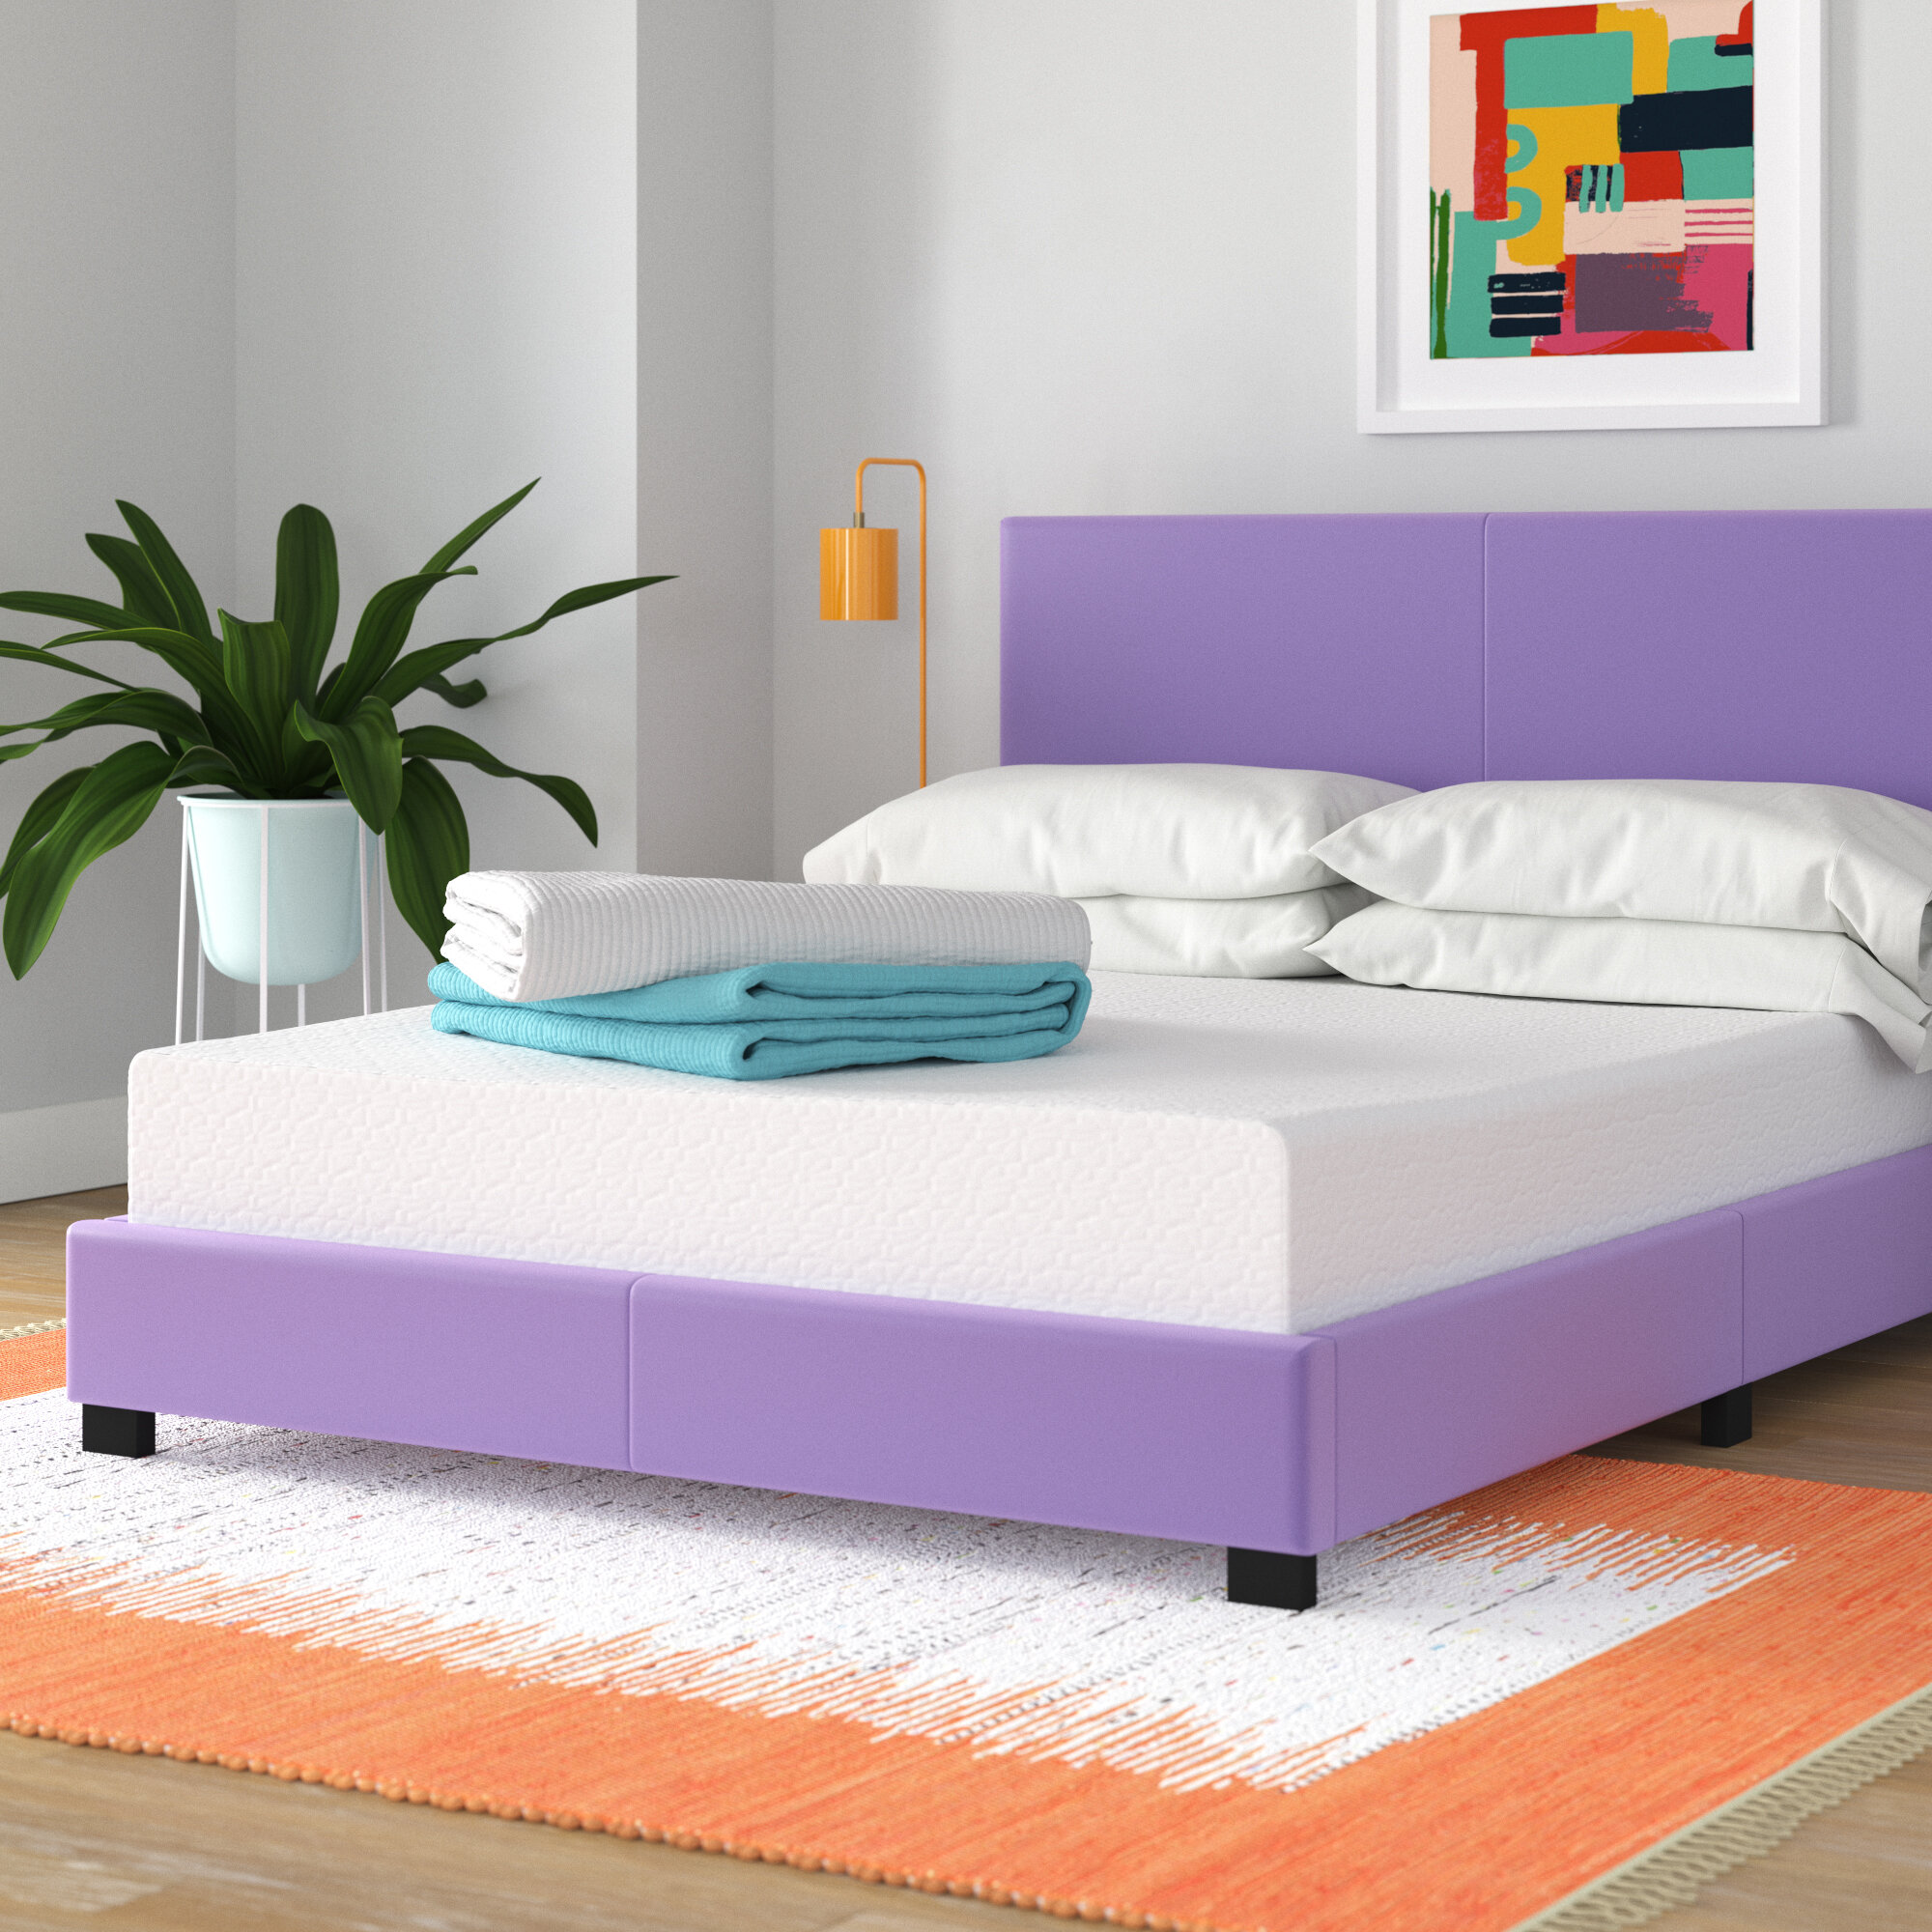 "Wayfair Sleep 4"" Medium Memory Foam Mattress"